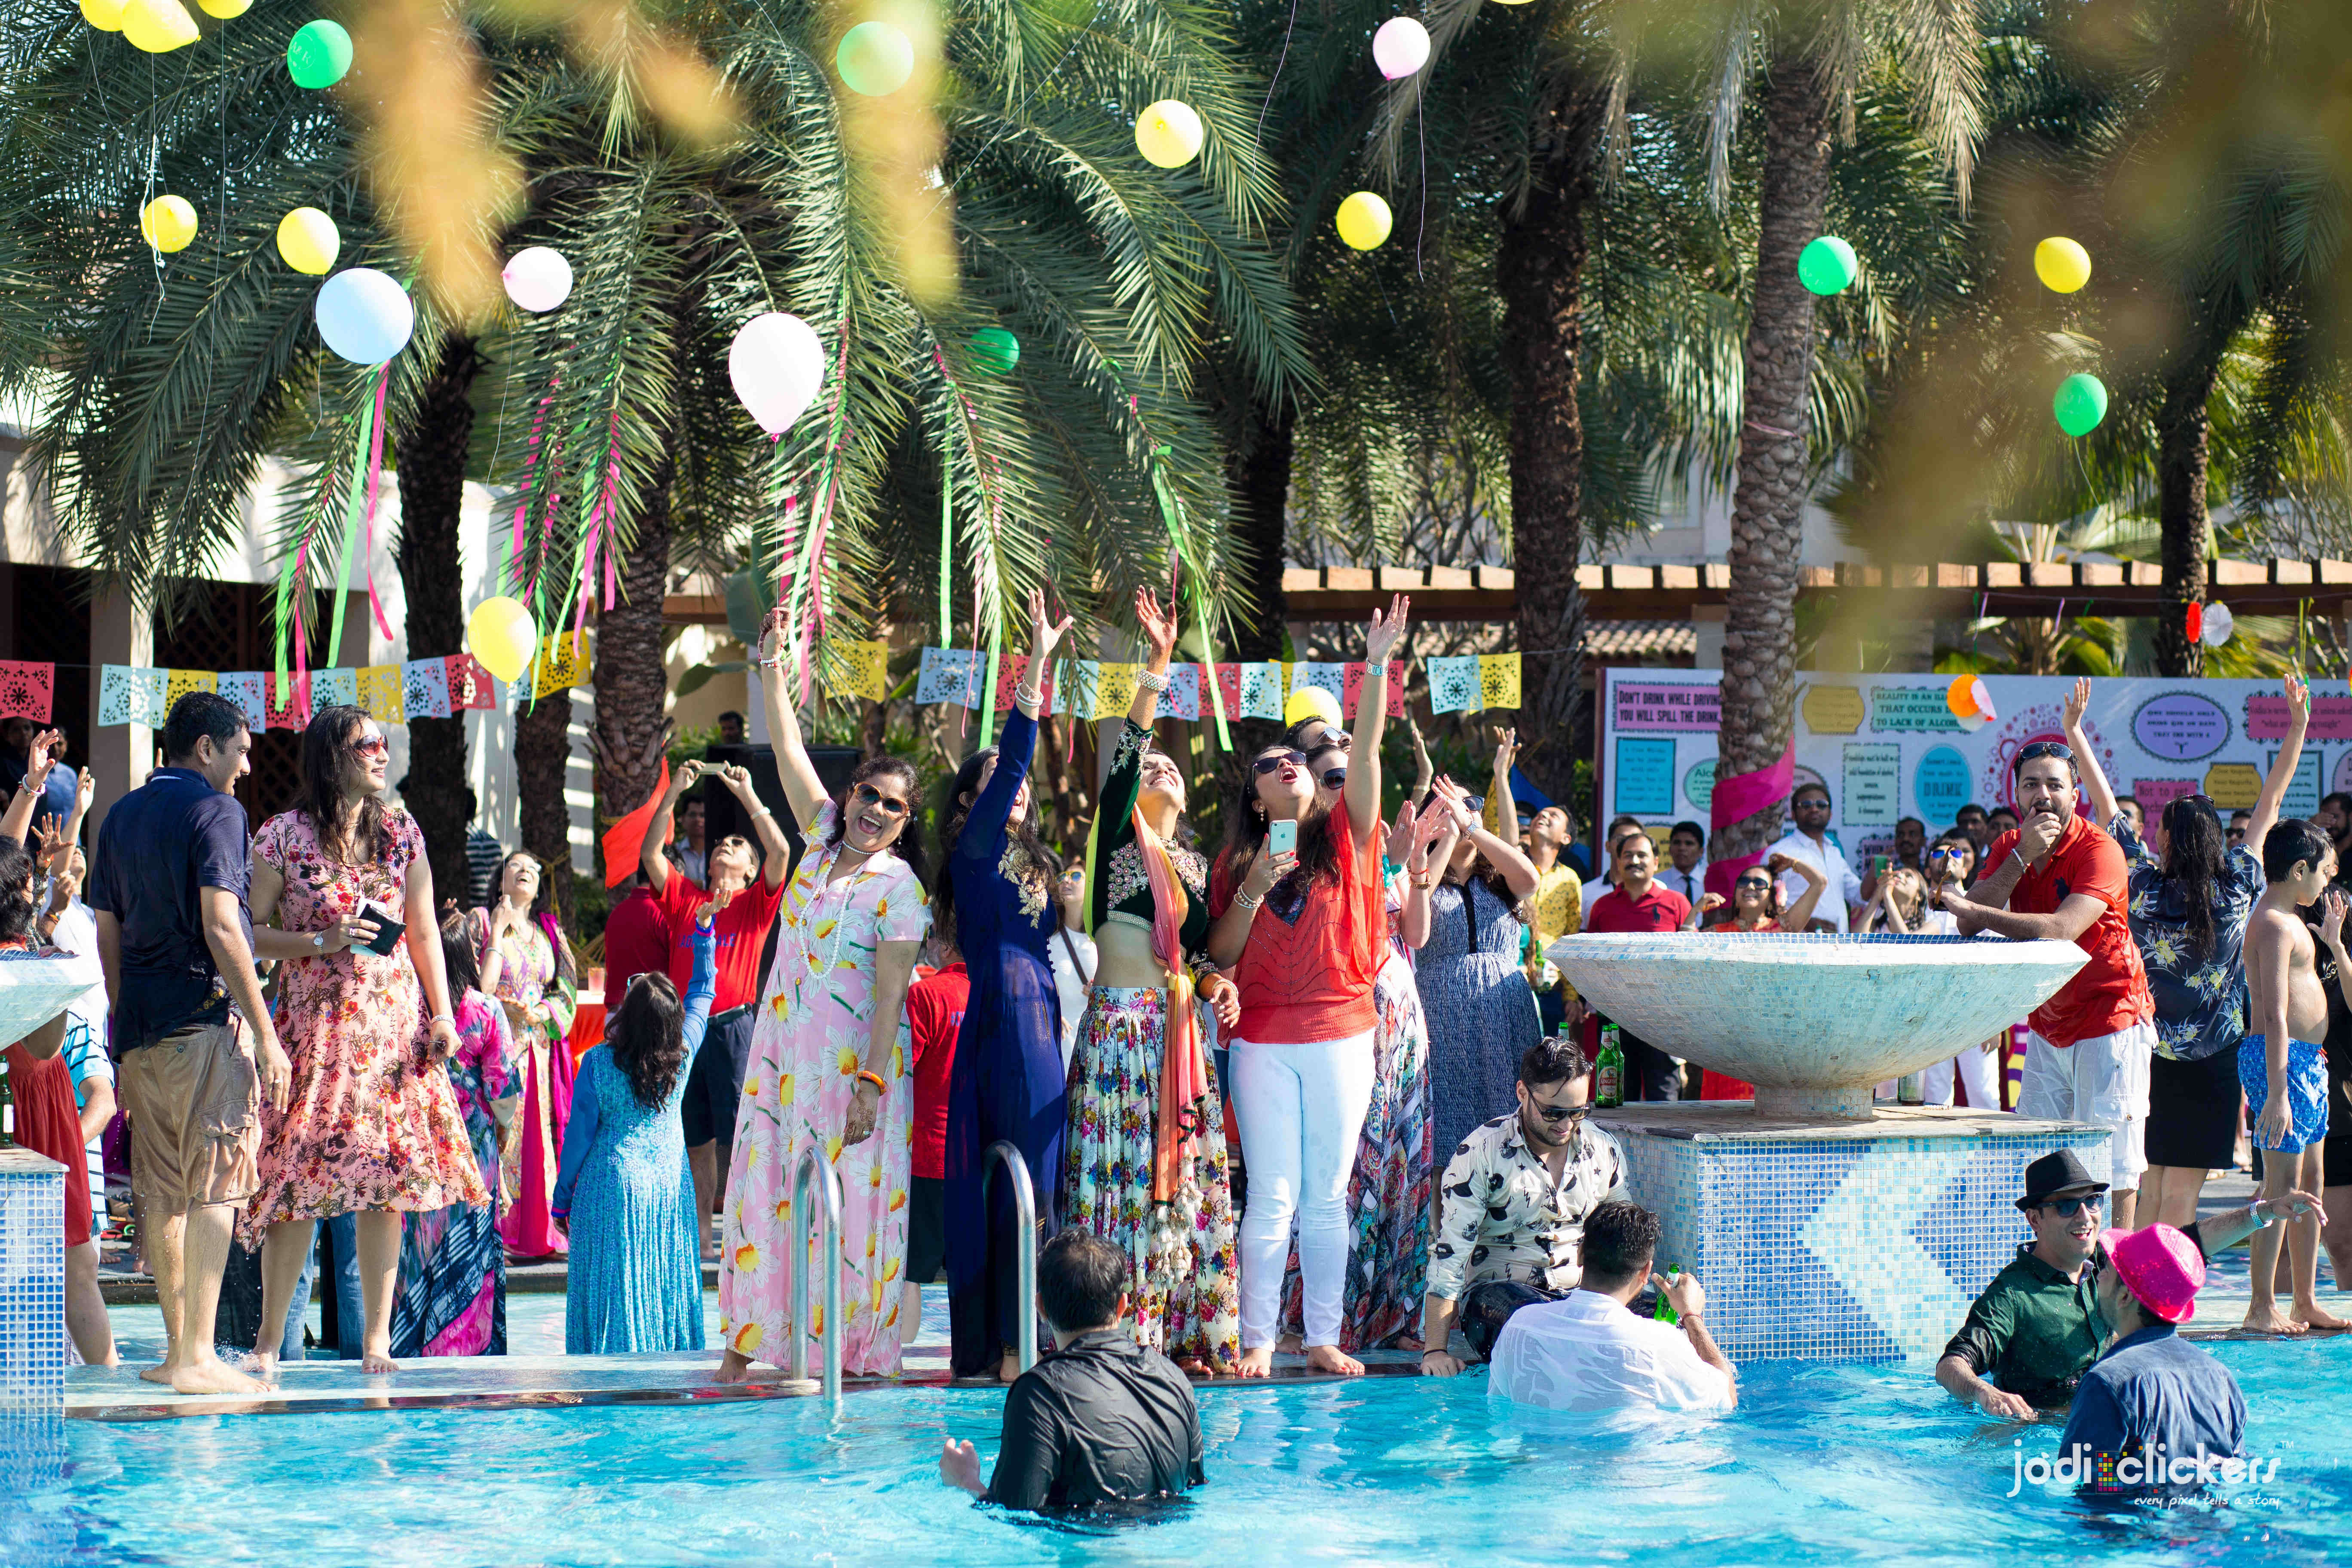 the pool party!:jodi clickers, f5 advertainment, manish malhotra